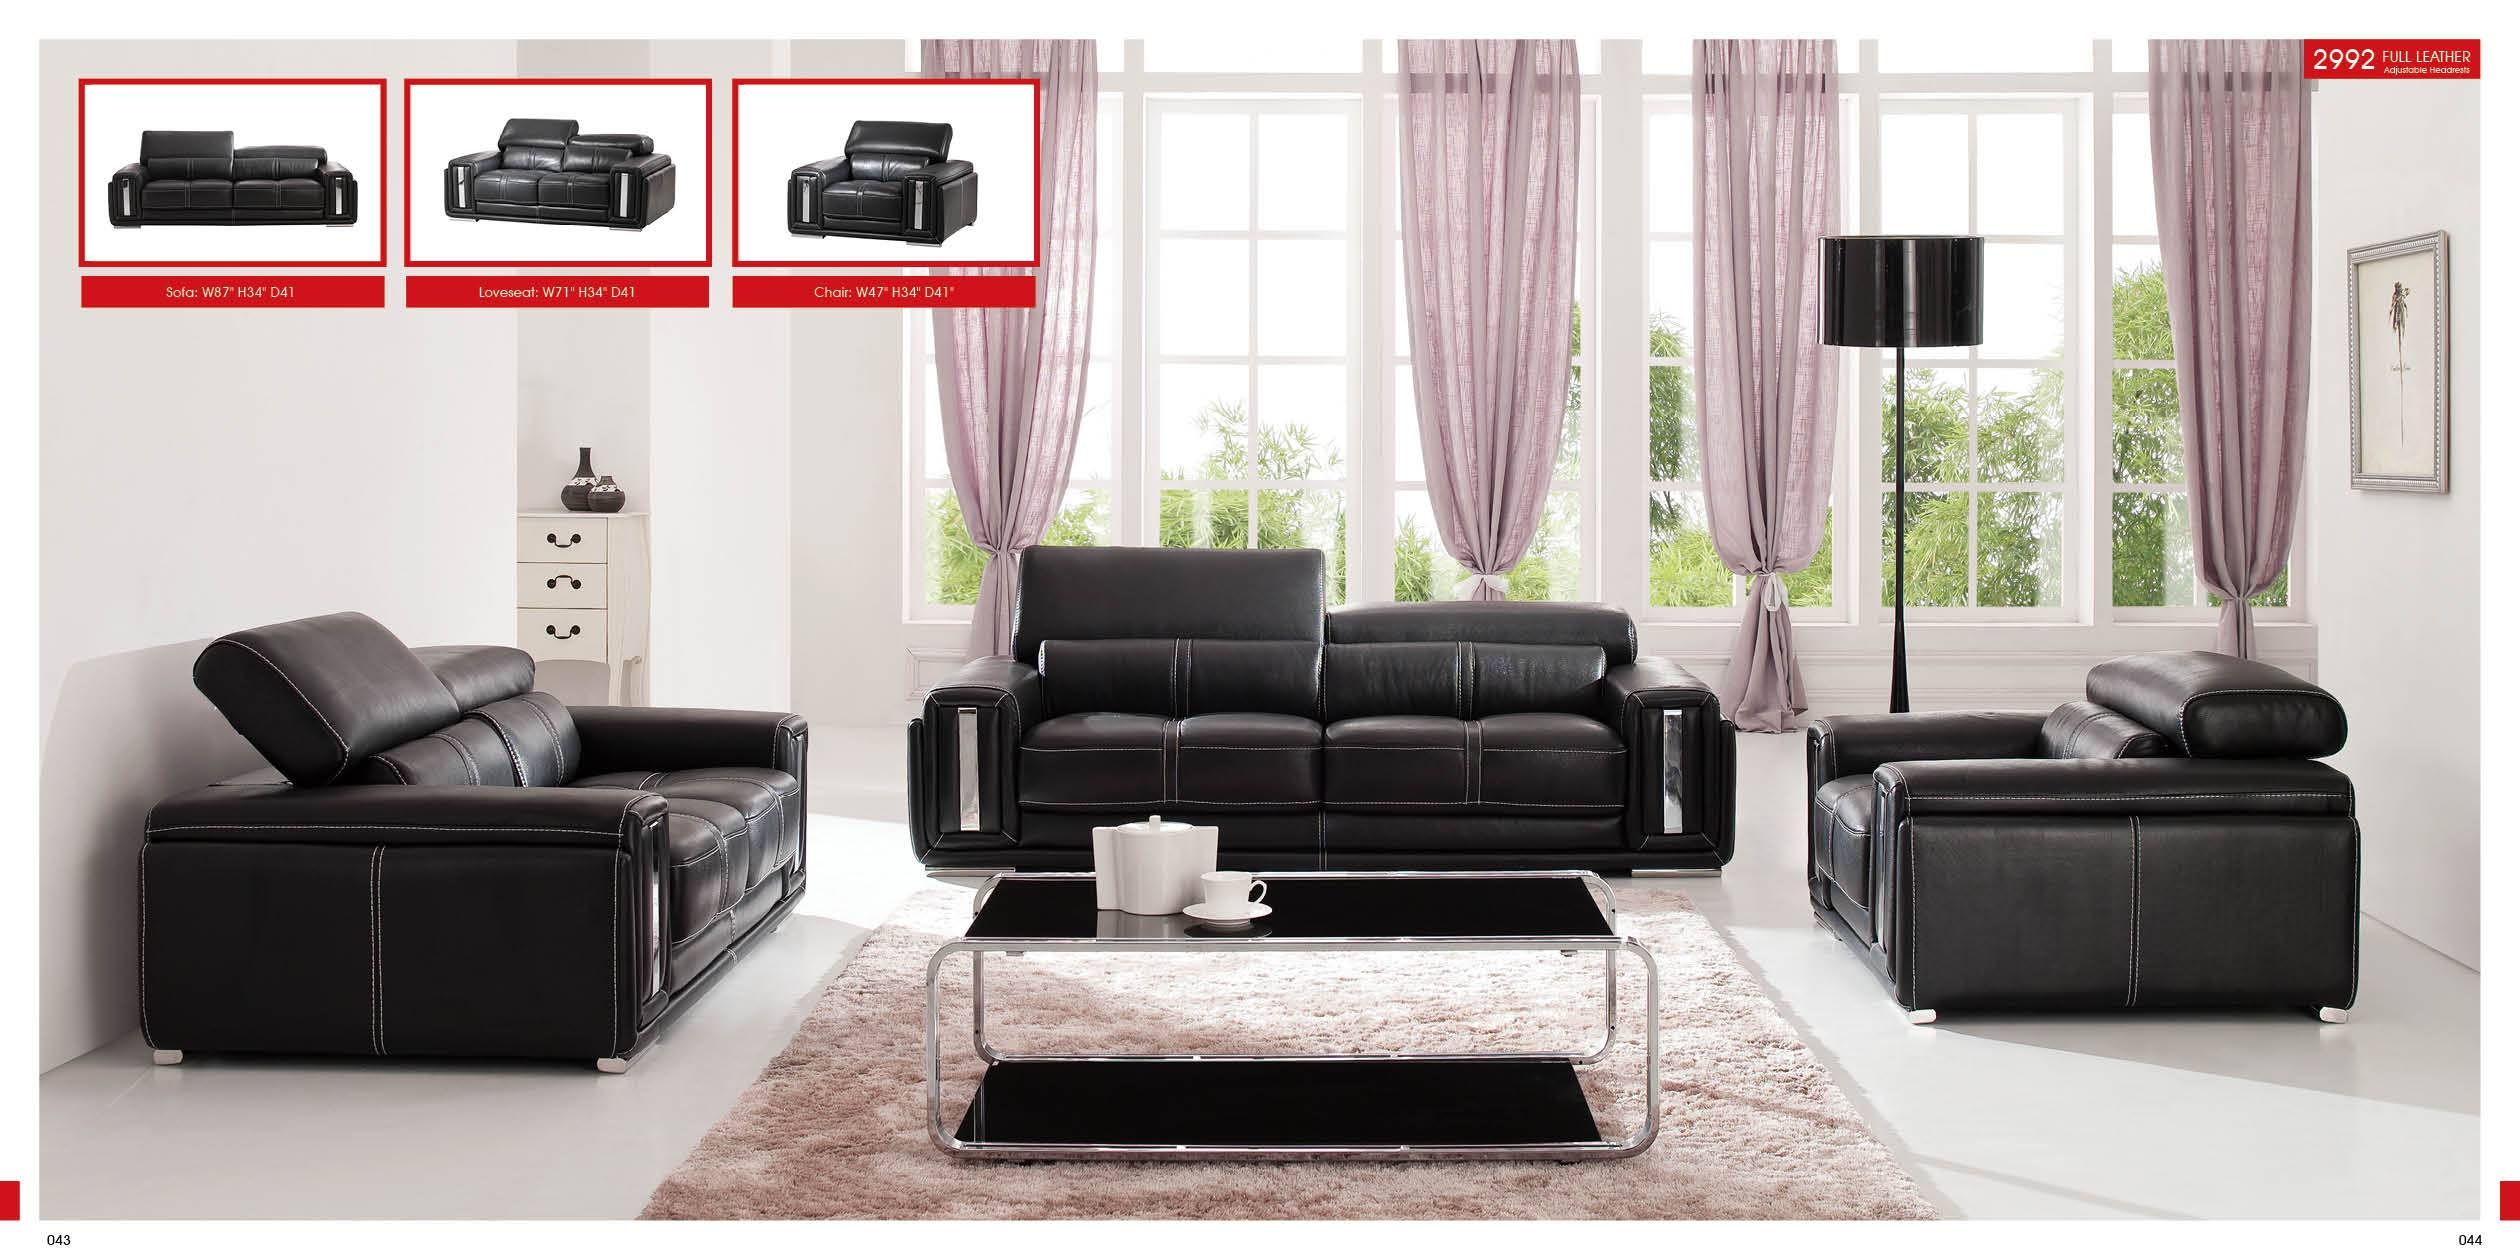 Best 15 of Sofa Chairs for Living Room